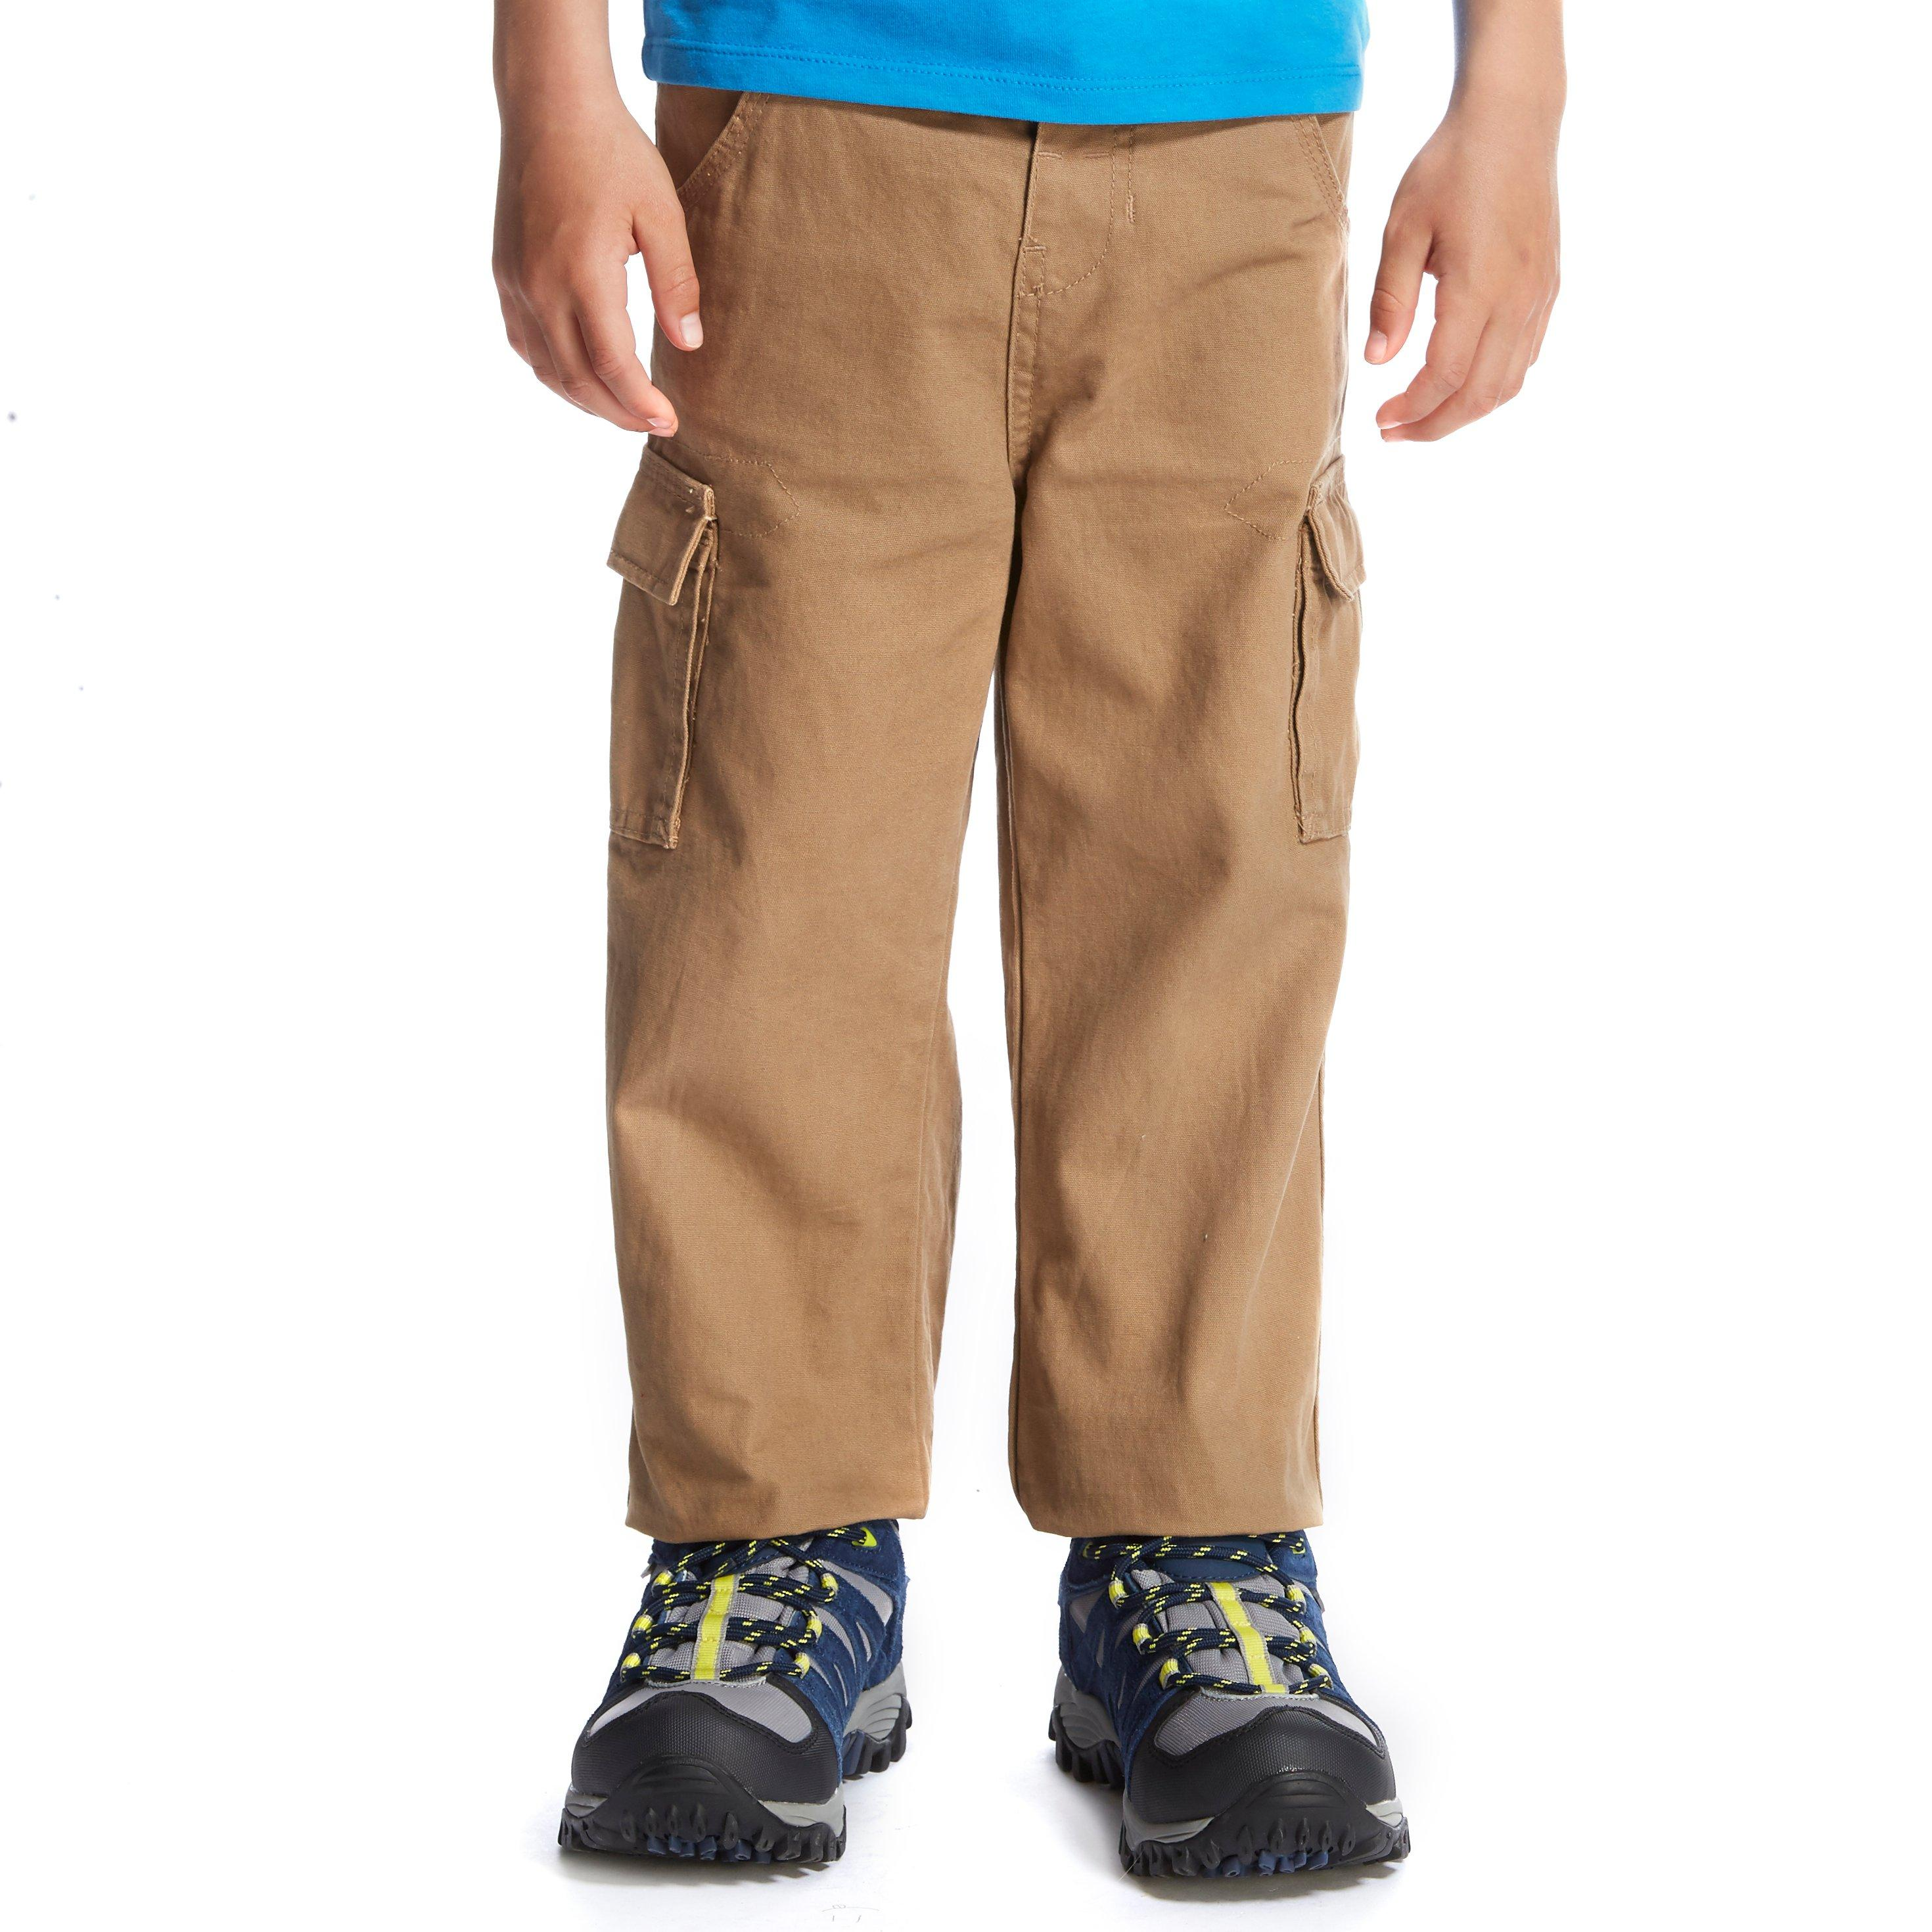 3ae787e45 Peter Storm Kids' Cargo Trousers